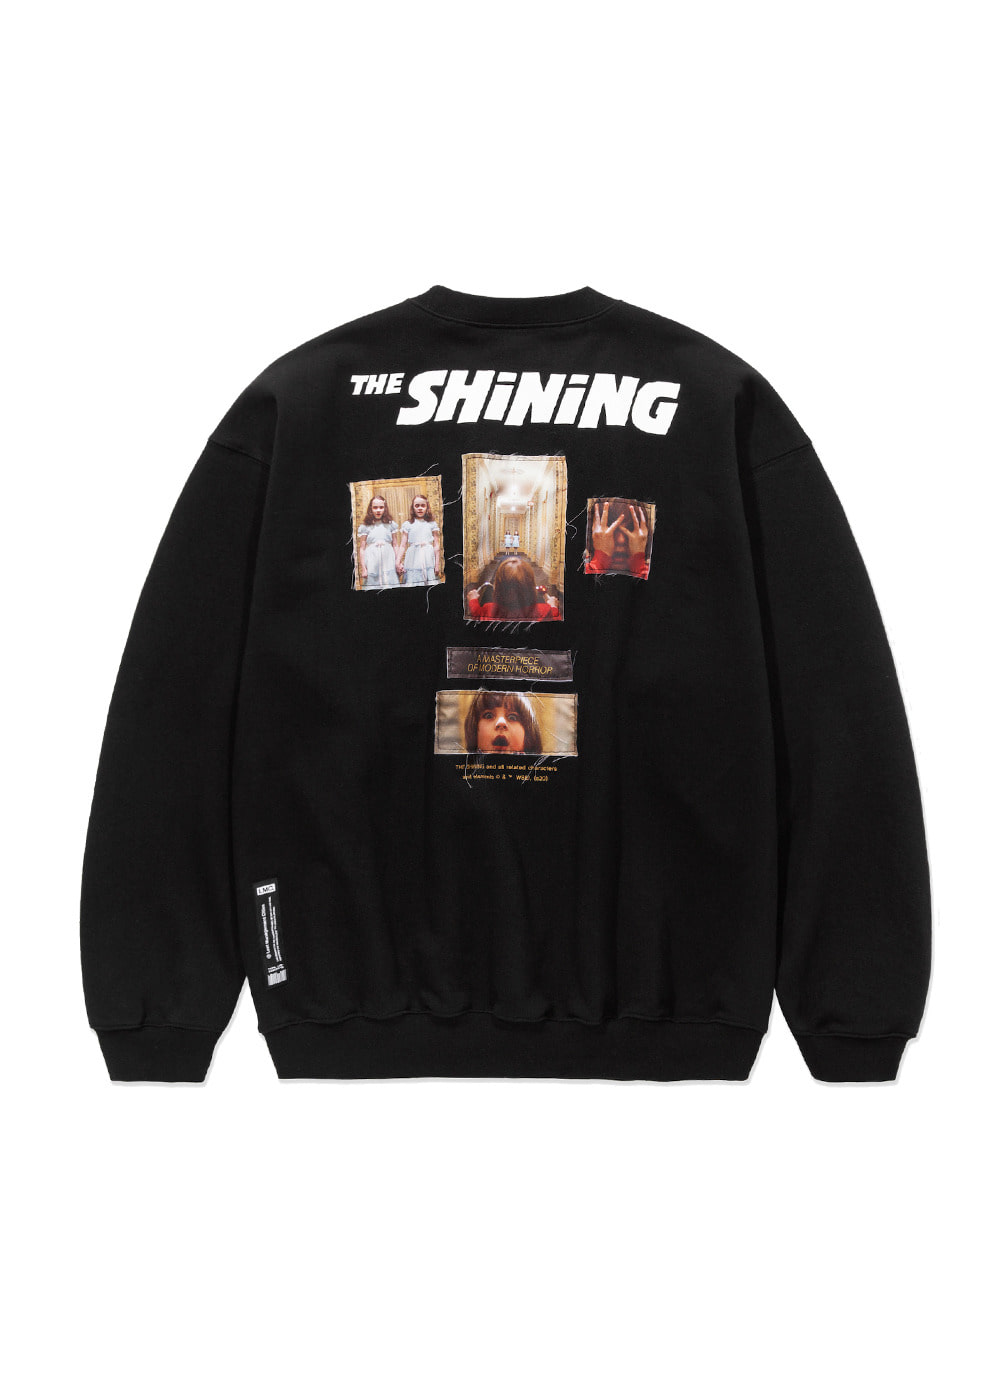 LMC│THE SHINING APPLIQUE OVERSIZED SWEATSHIRT black